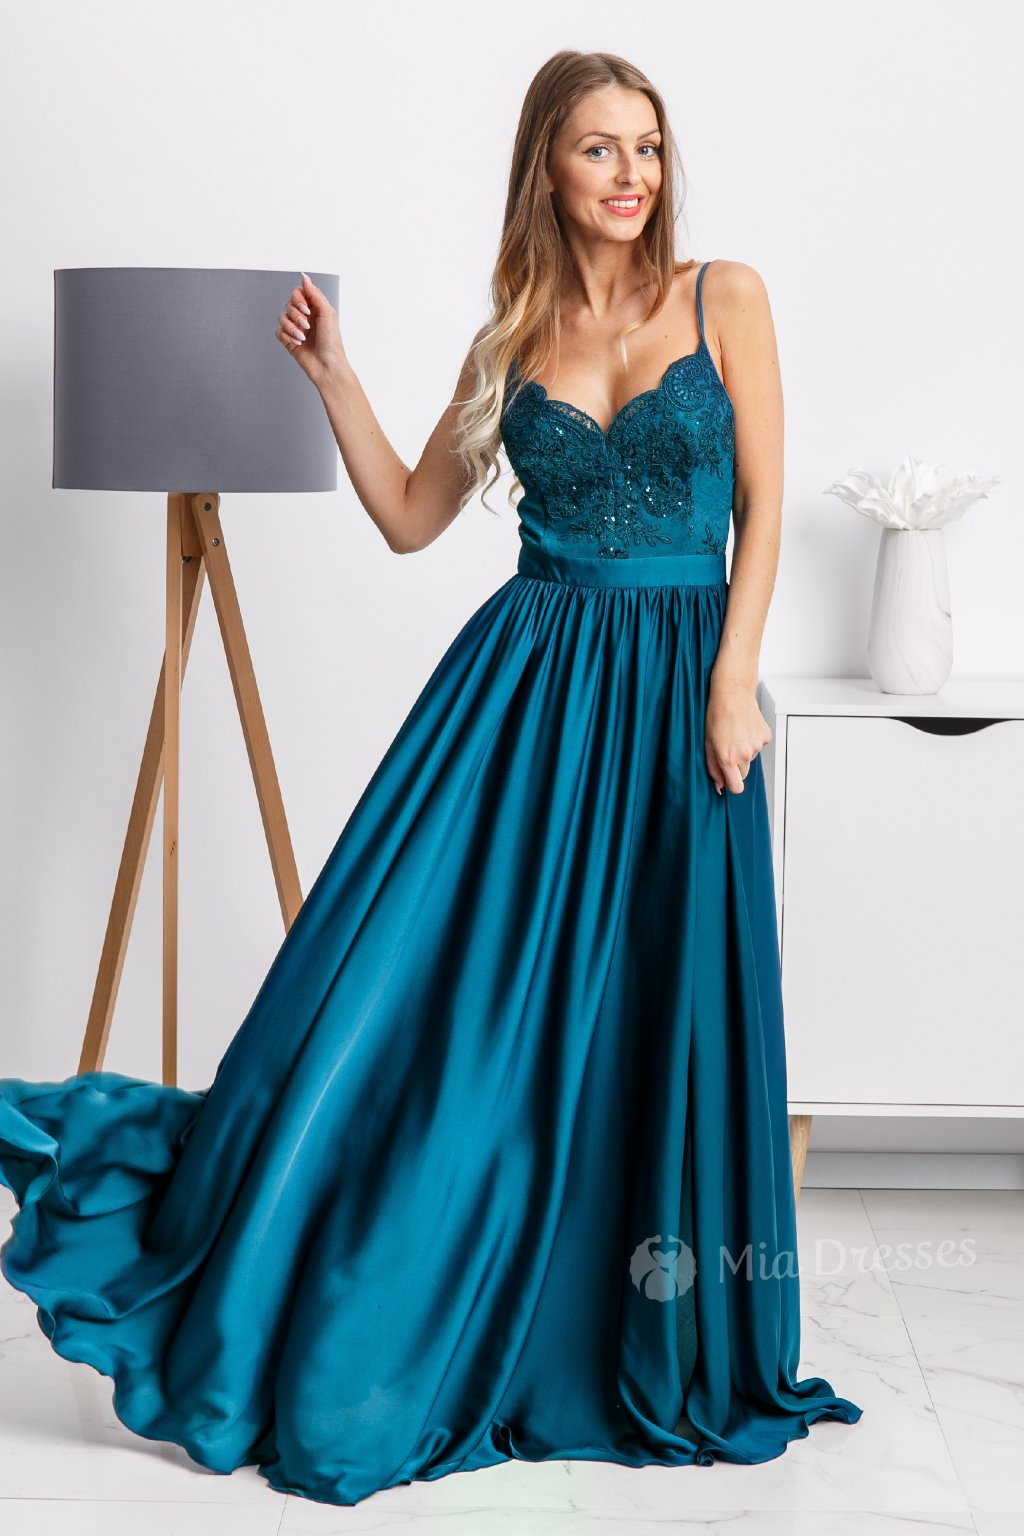 Teal sequin and satin formal dress